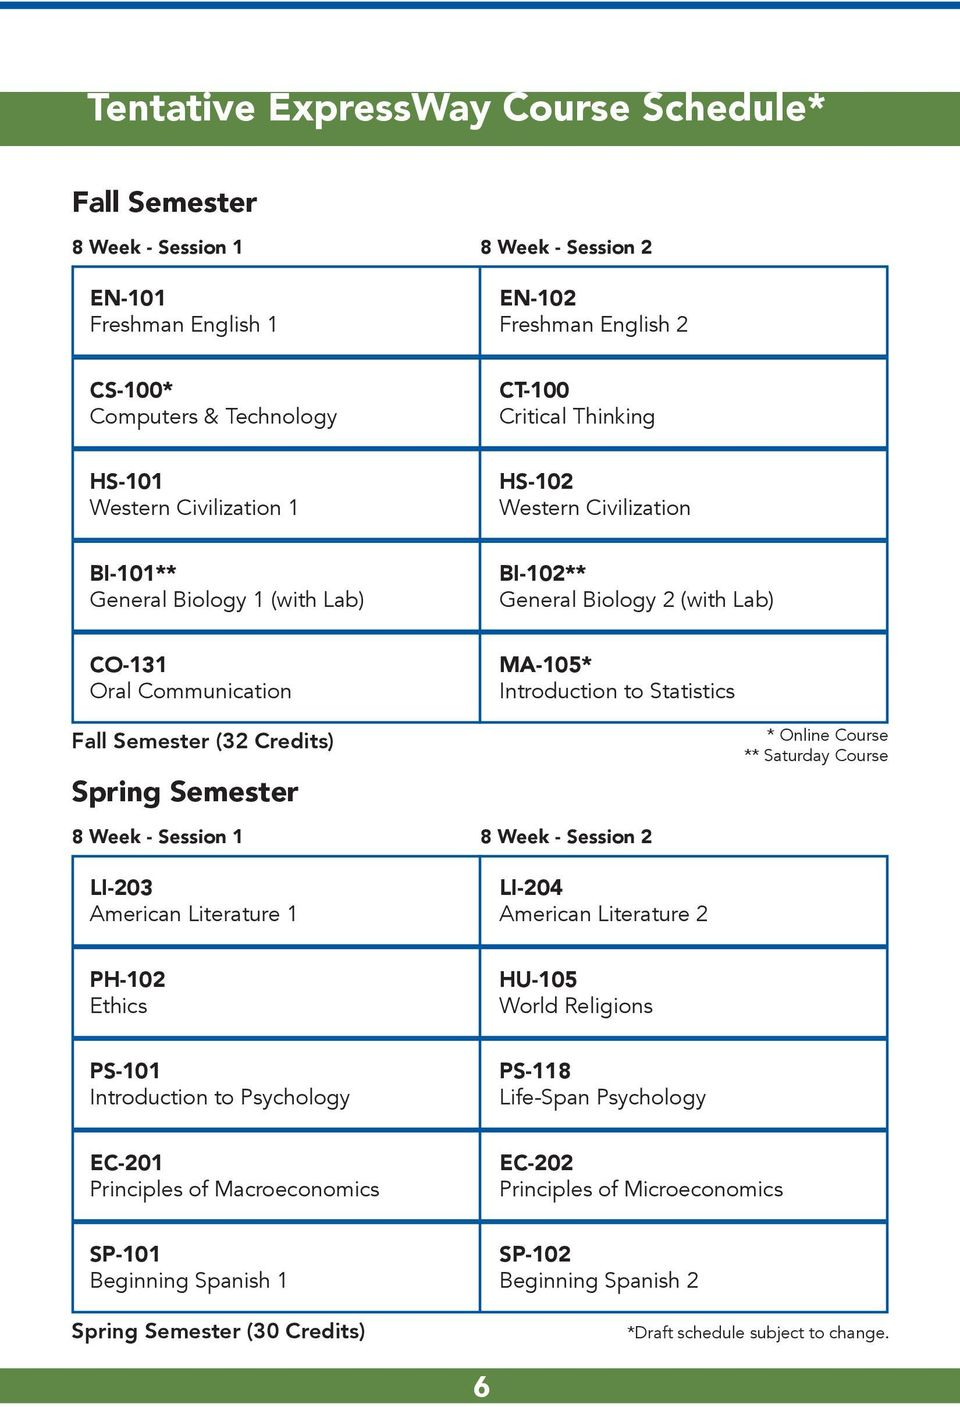 Semester (32 Credits) Spring Semester 8 Week - Session 1 8 Week - Session 2 * Online Course ** Saturday Course LI-203 American Literature 1 LI-204 American Literature 2 PH-102 Ethics HU-105 World